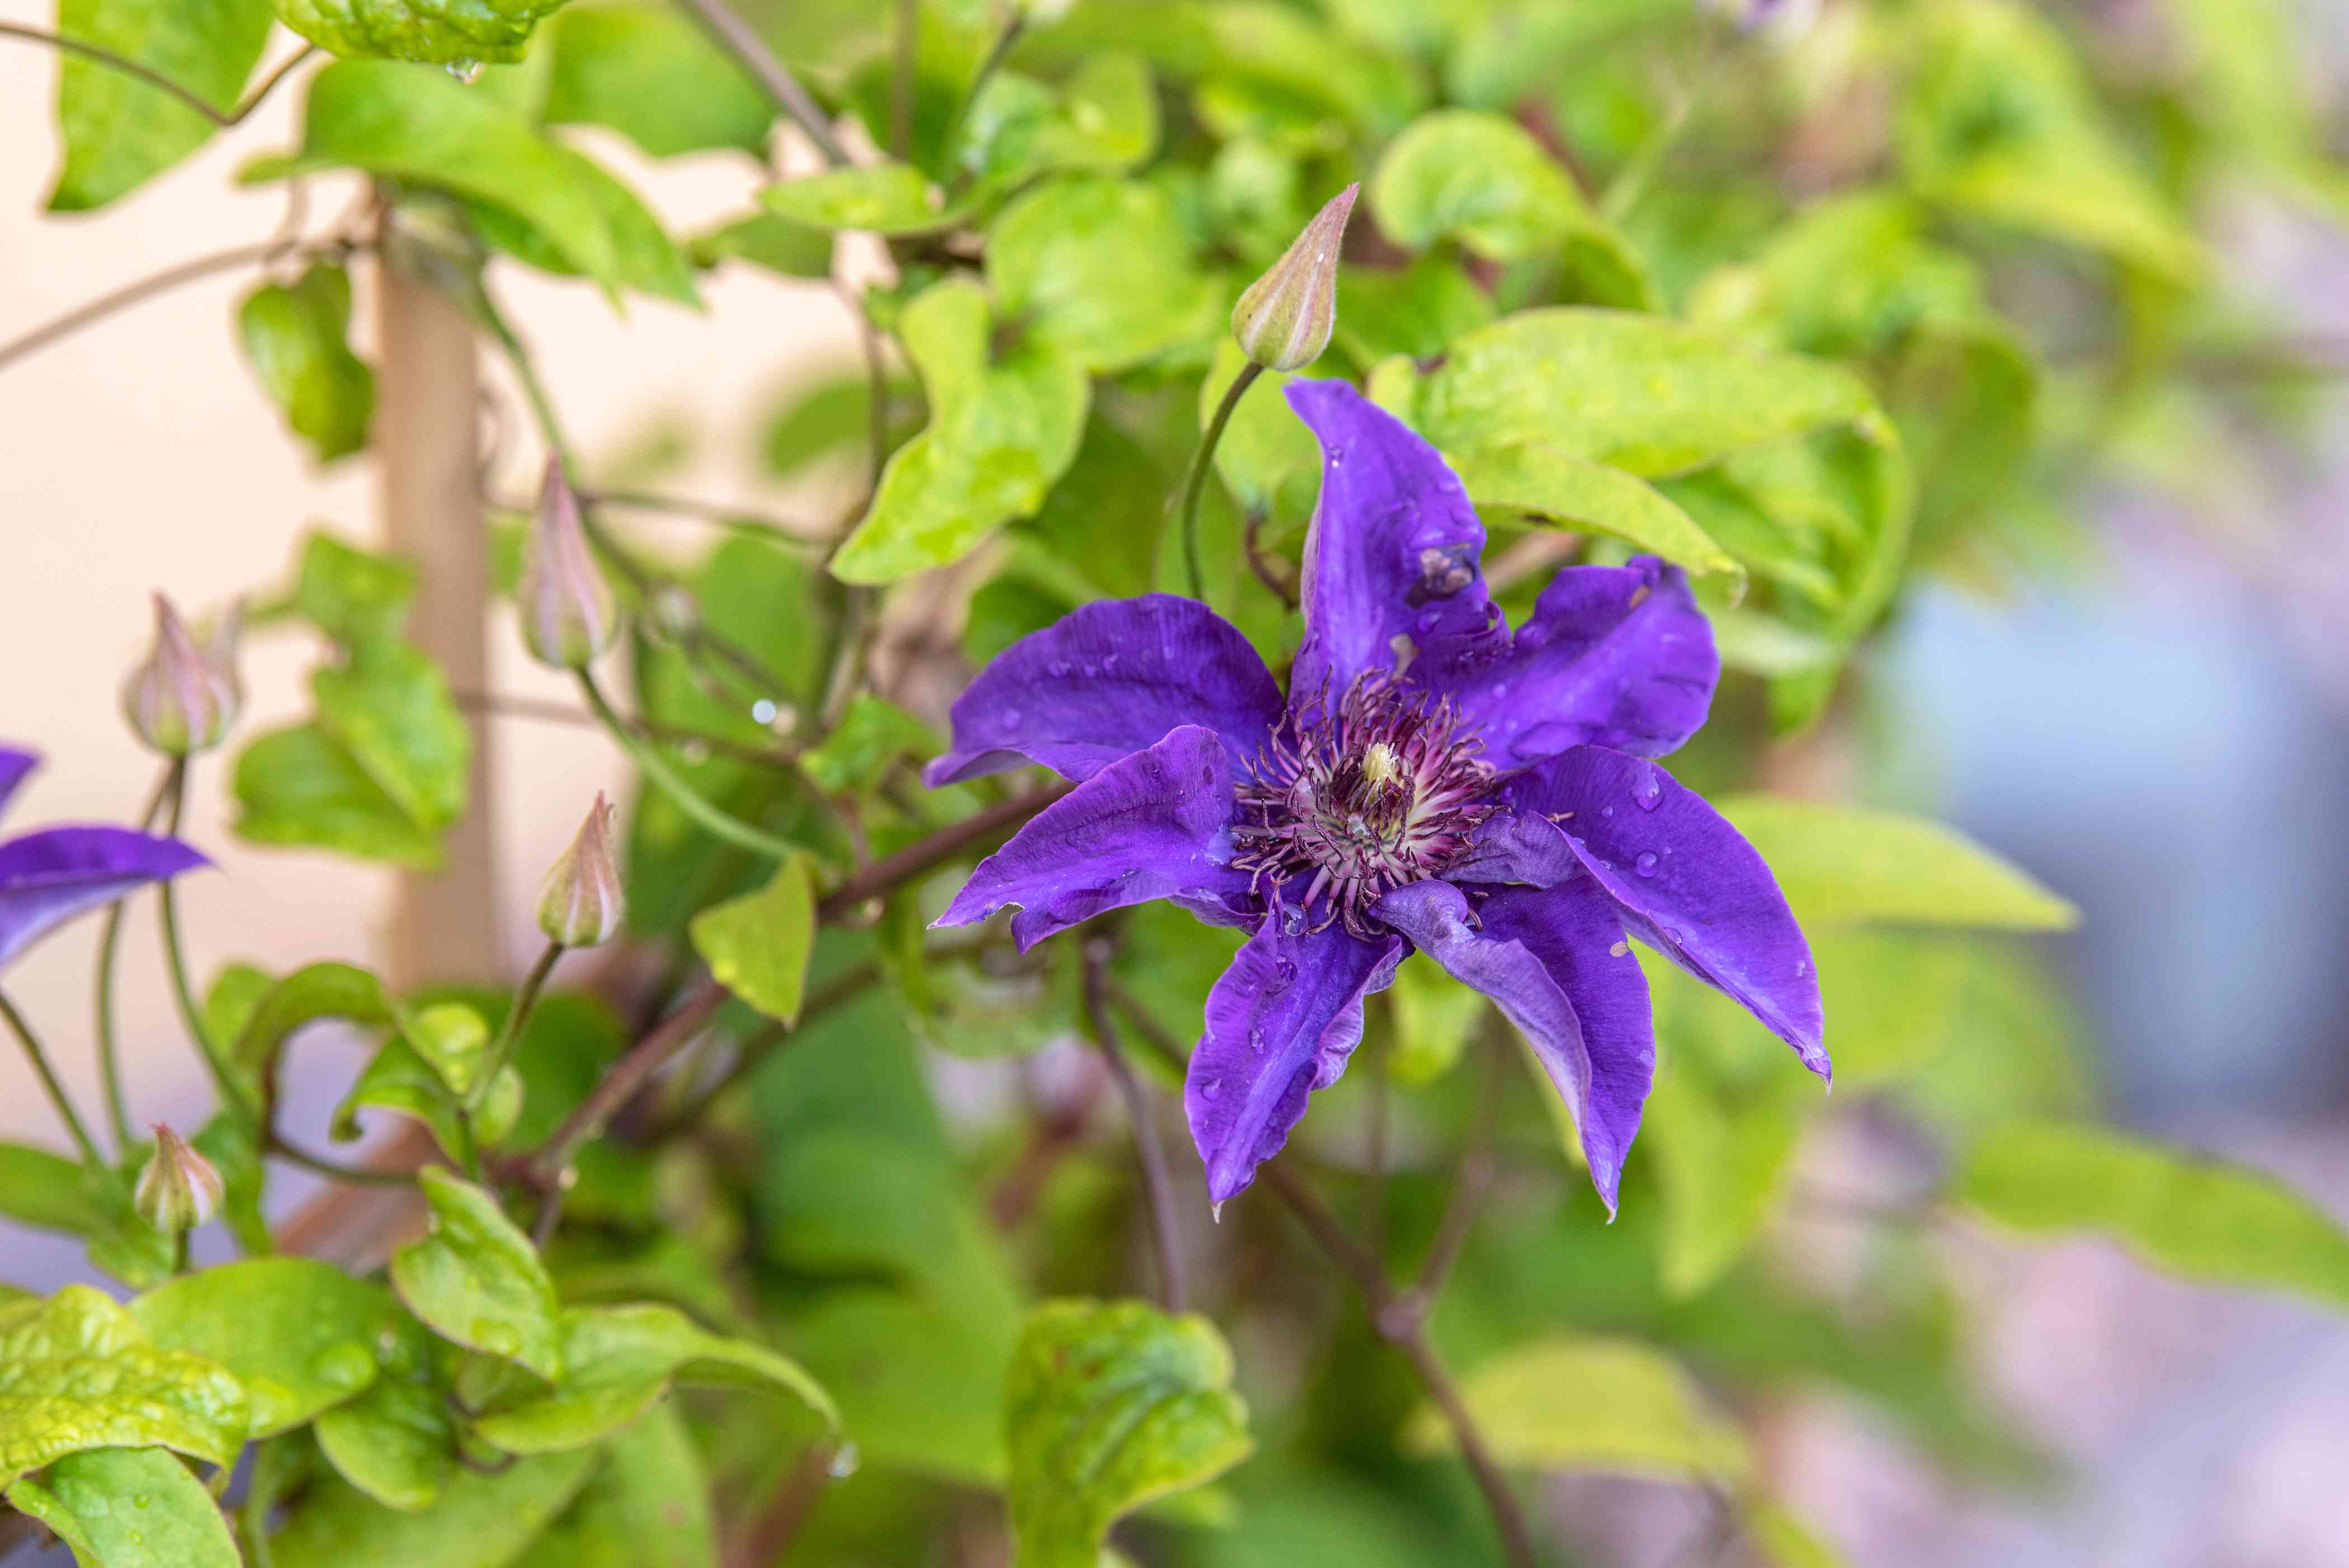 Clematis 'The President' plant with violet-blue flower with reddish anthers in center growing on vine